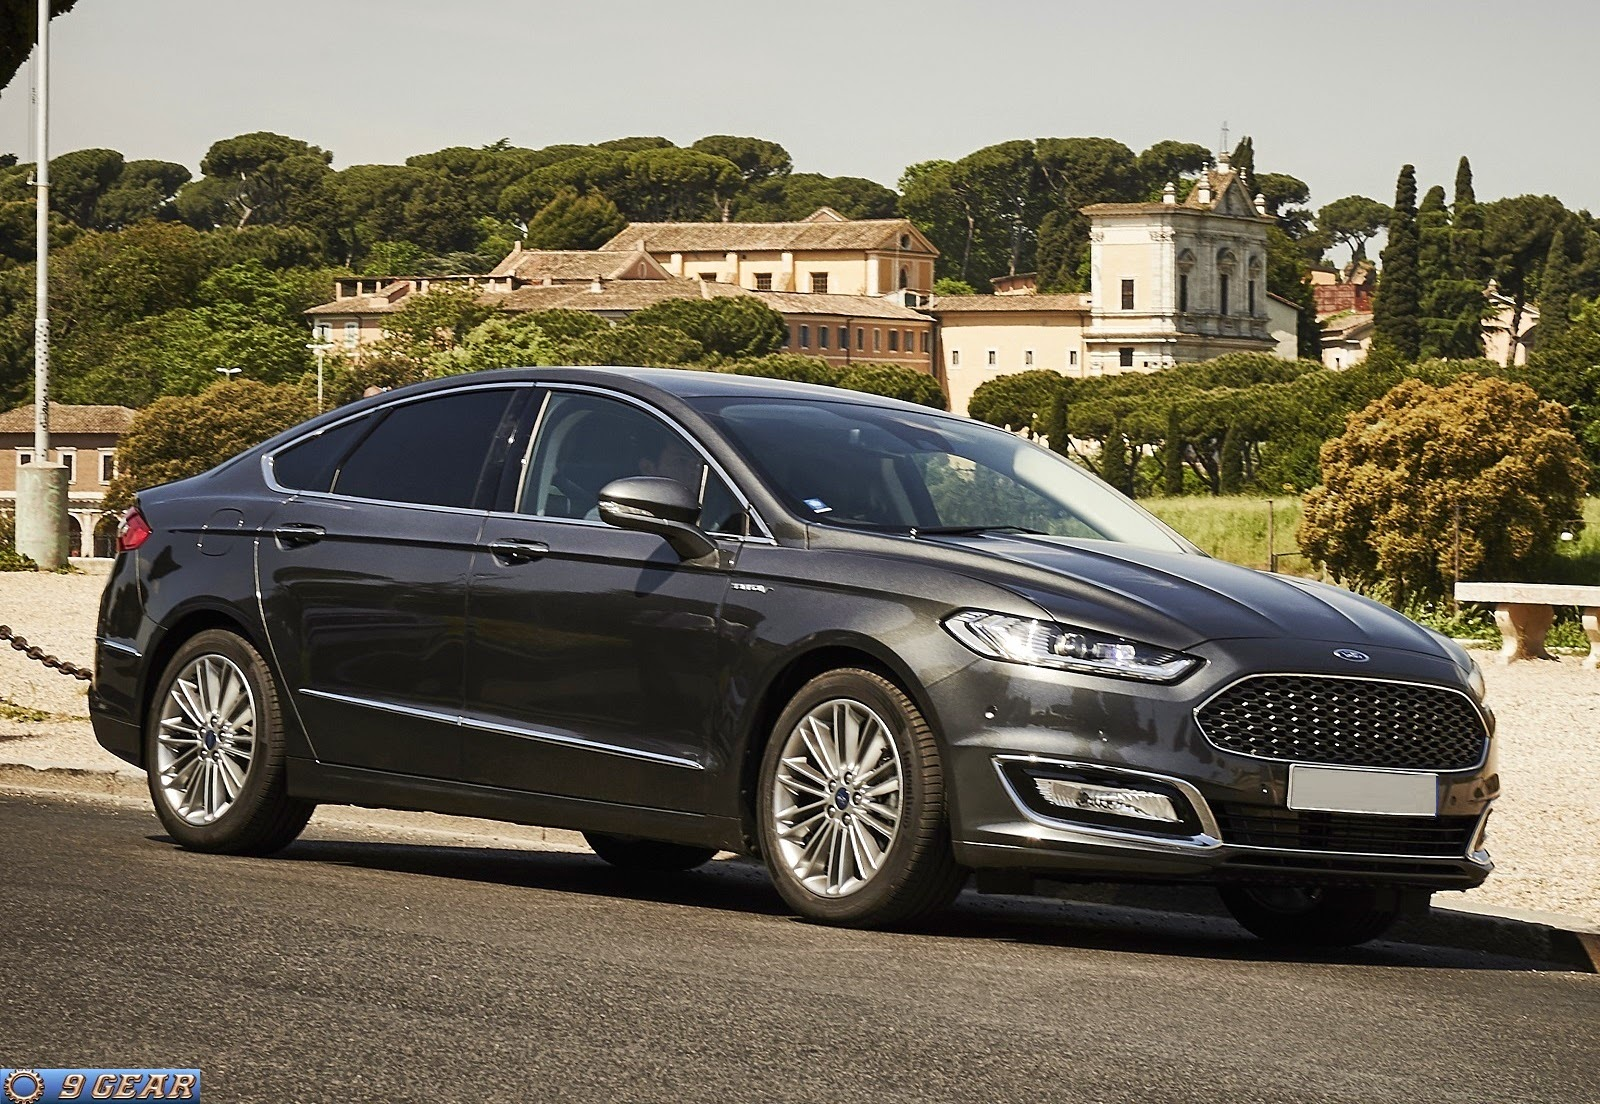 ford mondeo vignale 210 ps bi turbo 2 0 litre tdci car reviews new car pictures for 2018 2019. Black Bedroom Furniture Sets. Home Design Ideas